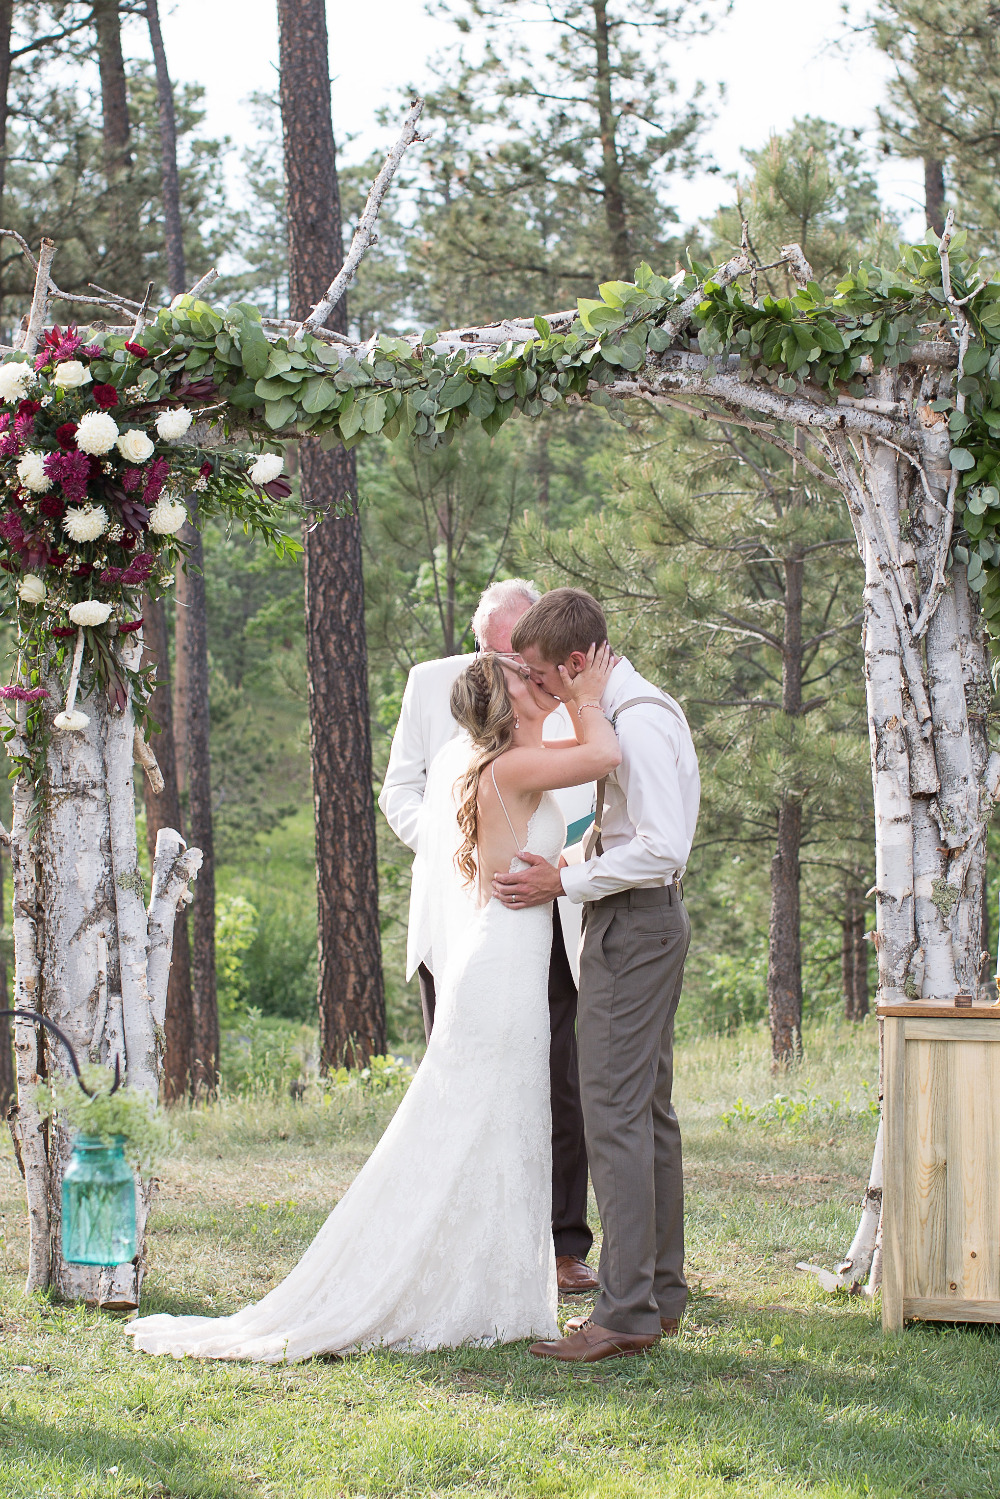 wedding kiss with wooden wedding arch